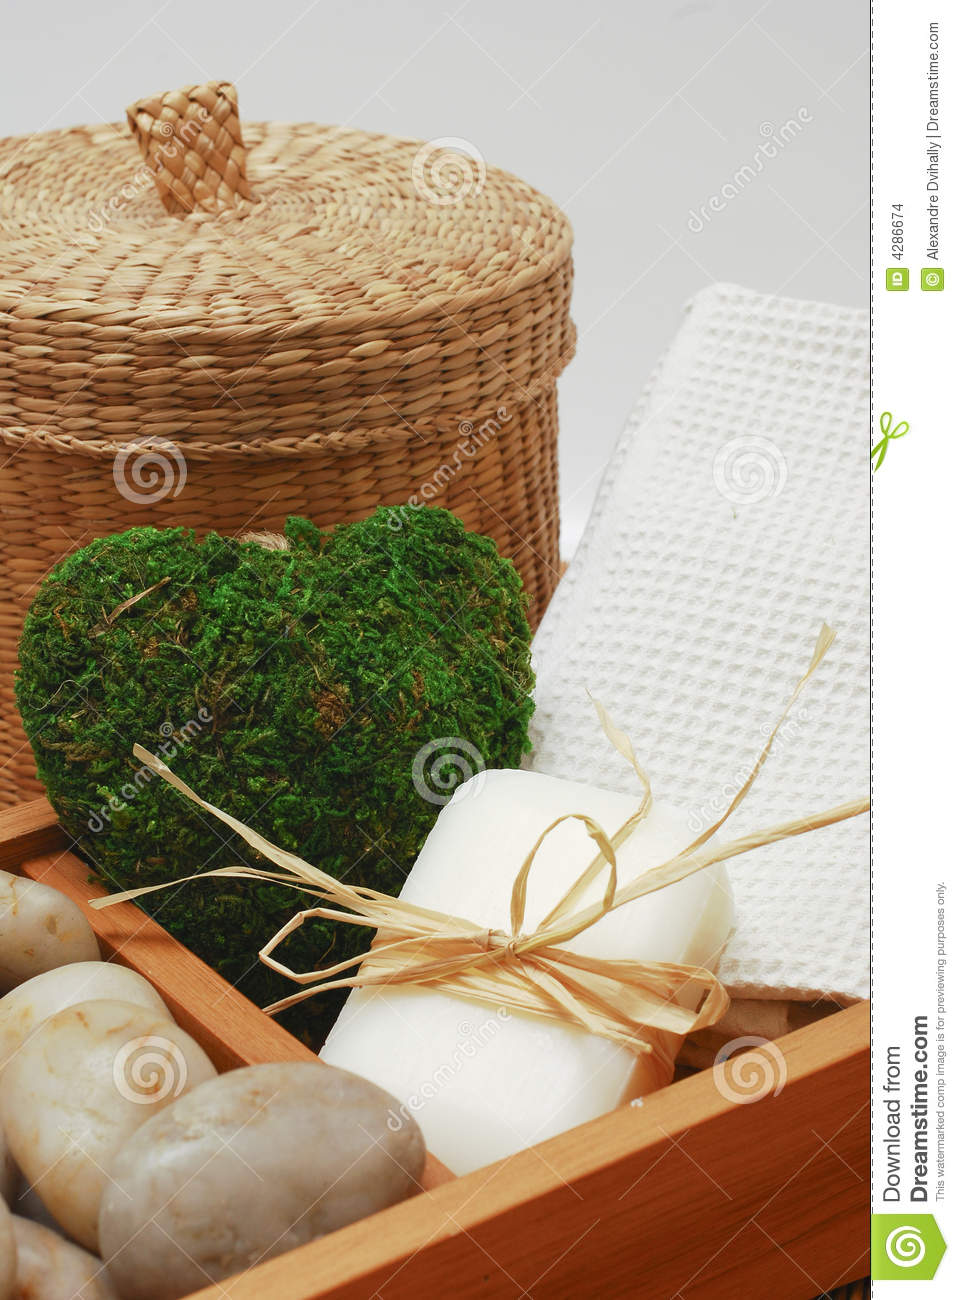 spa kit for wellness or relaxing stock images image 4286674